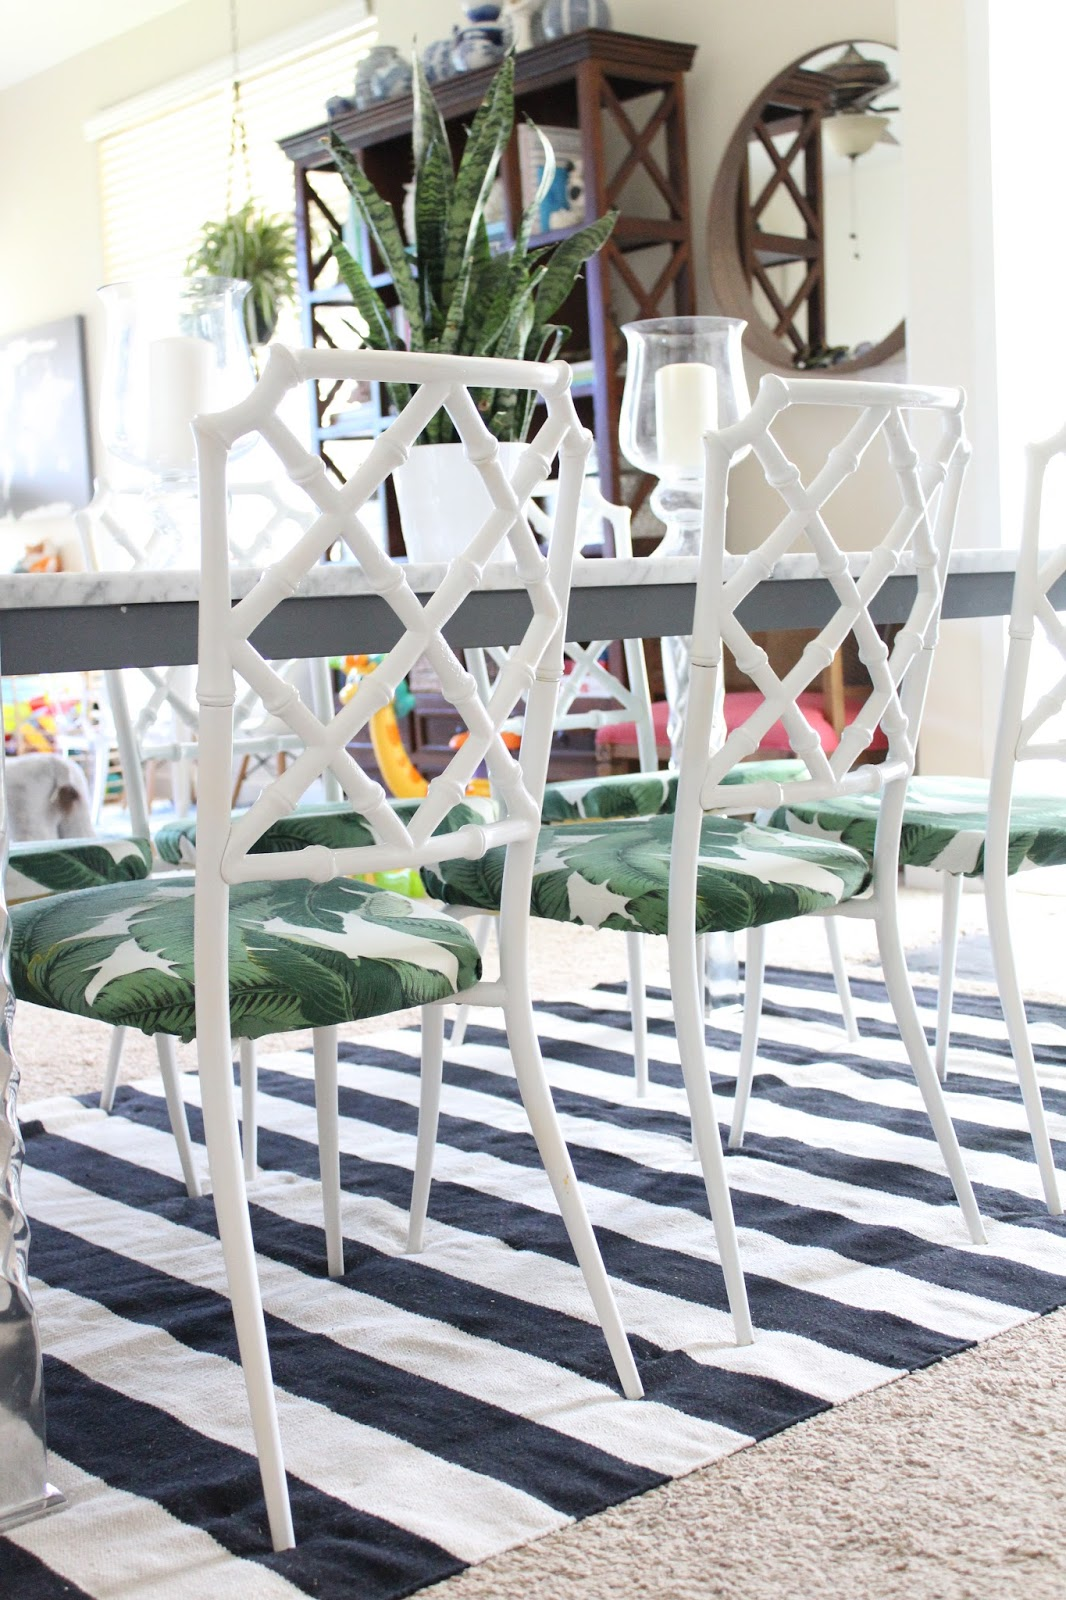 Bamboo Dining Chair In Steel Reinforcement Life With A Dash Of Whimsy Diy Vintage Faux Chairs Update